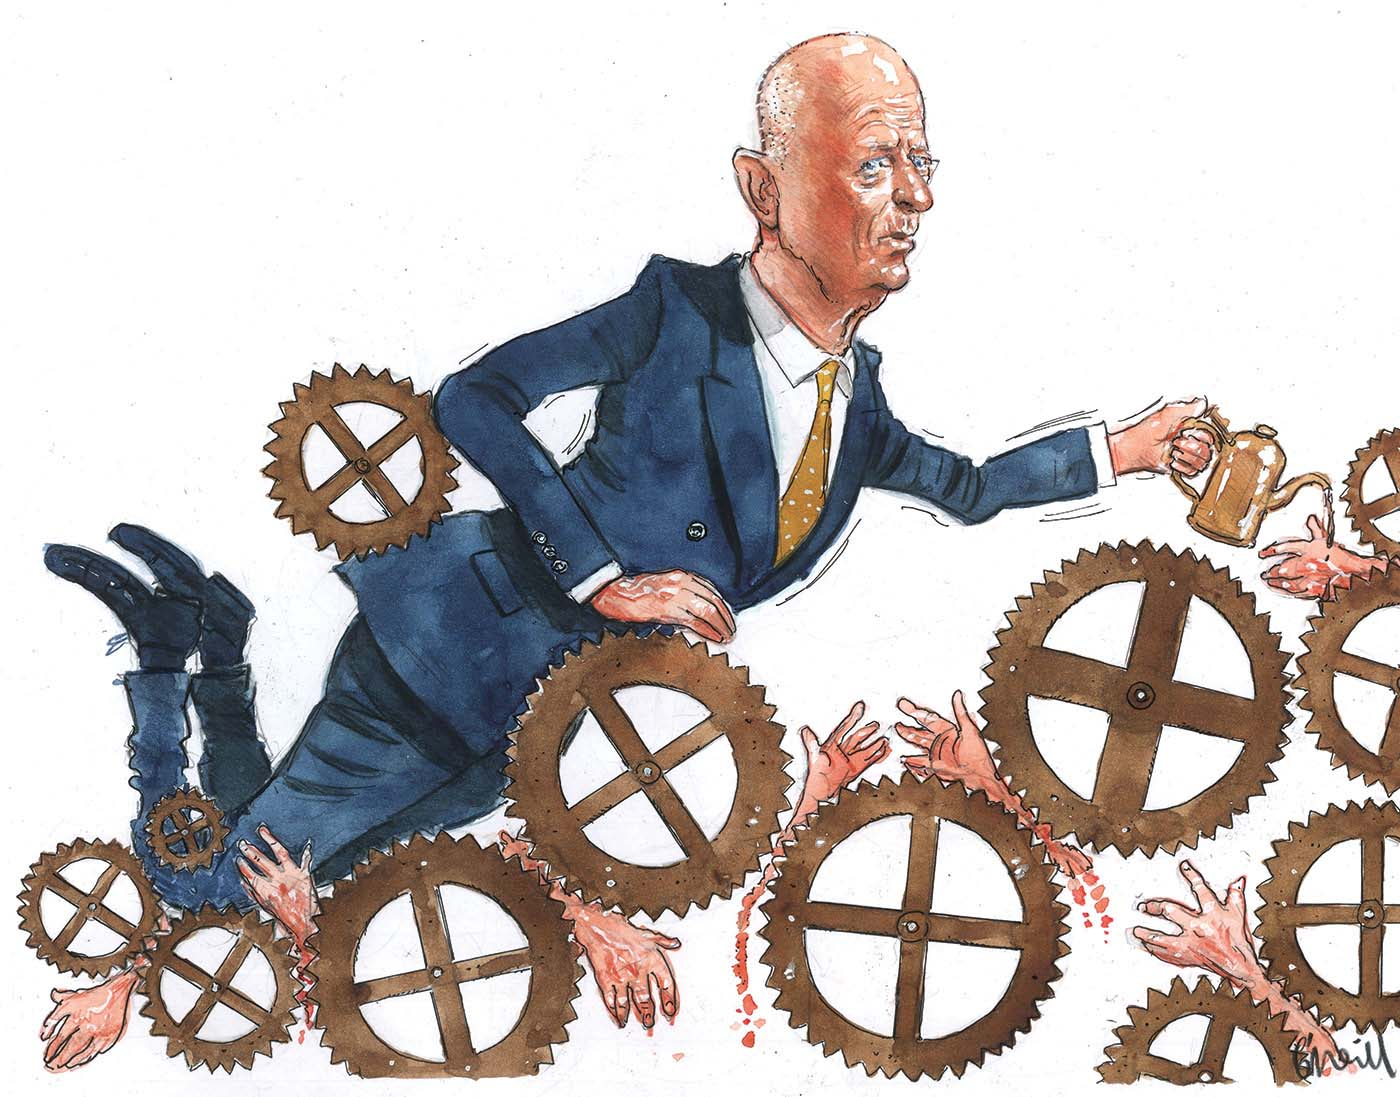 A colour illustration depicting Glenn Stevens in a blue suit amongst a series of clockwork-style wheels, as though he is moving through them. He holds an oil can in his left hand. Seven severed hands are shown caught in amongst the wheels. Mr Steven's expression is one of uncertainty.  - click to view larger image